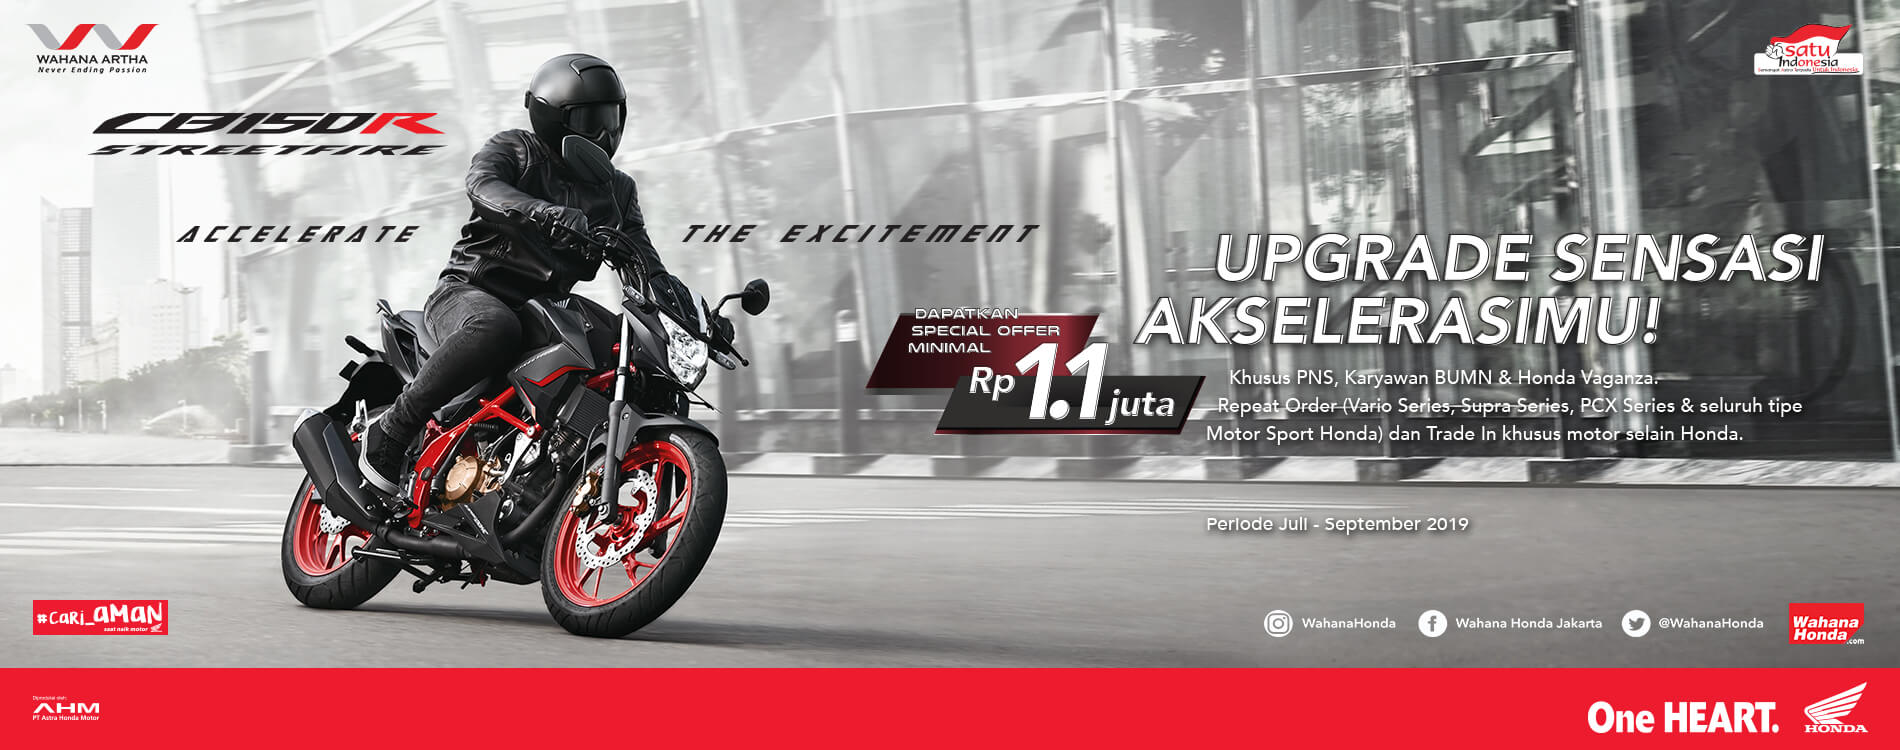 CB150R Streetfire Acclerate The Excitement - Periode Juli S.d September 2019